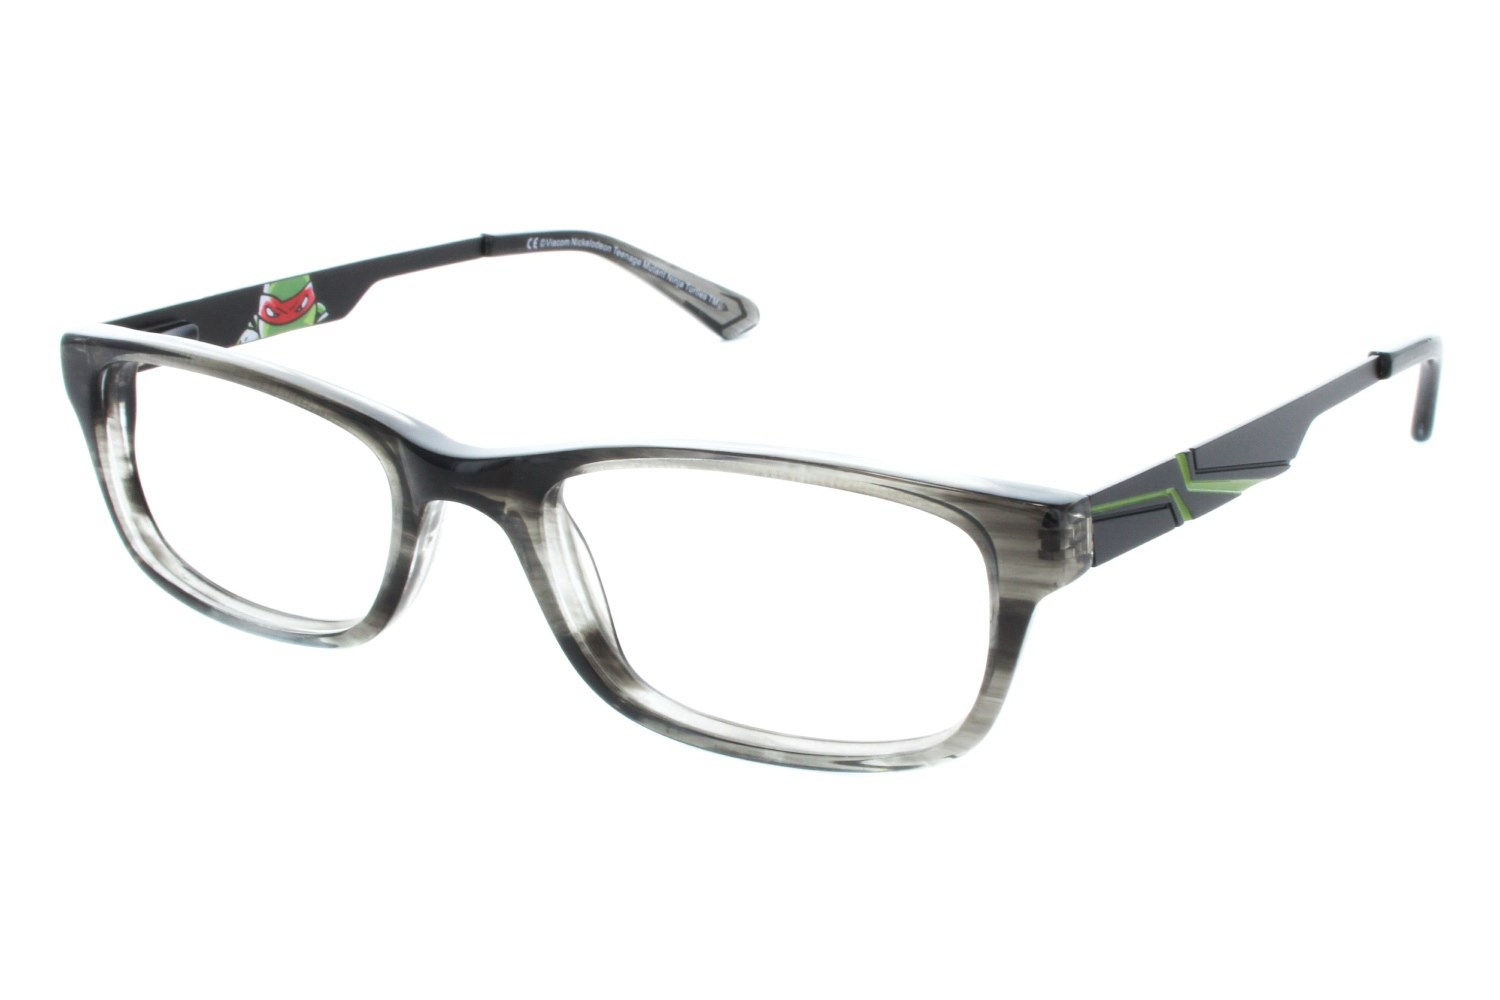 nickelodeon-teenage-mutant-ninja-turtles-bravado-prescription-eyeglasses